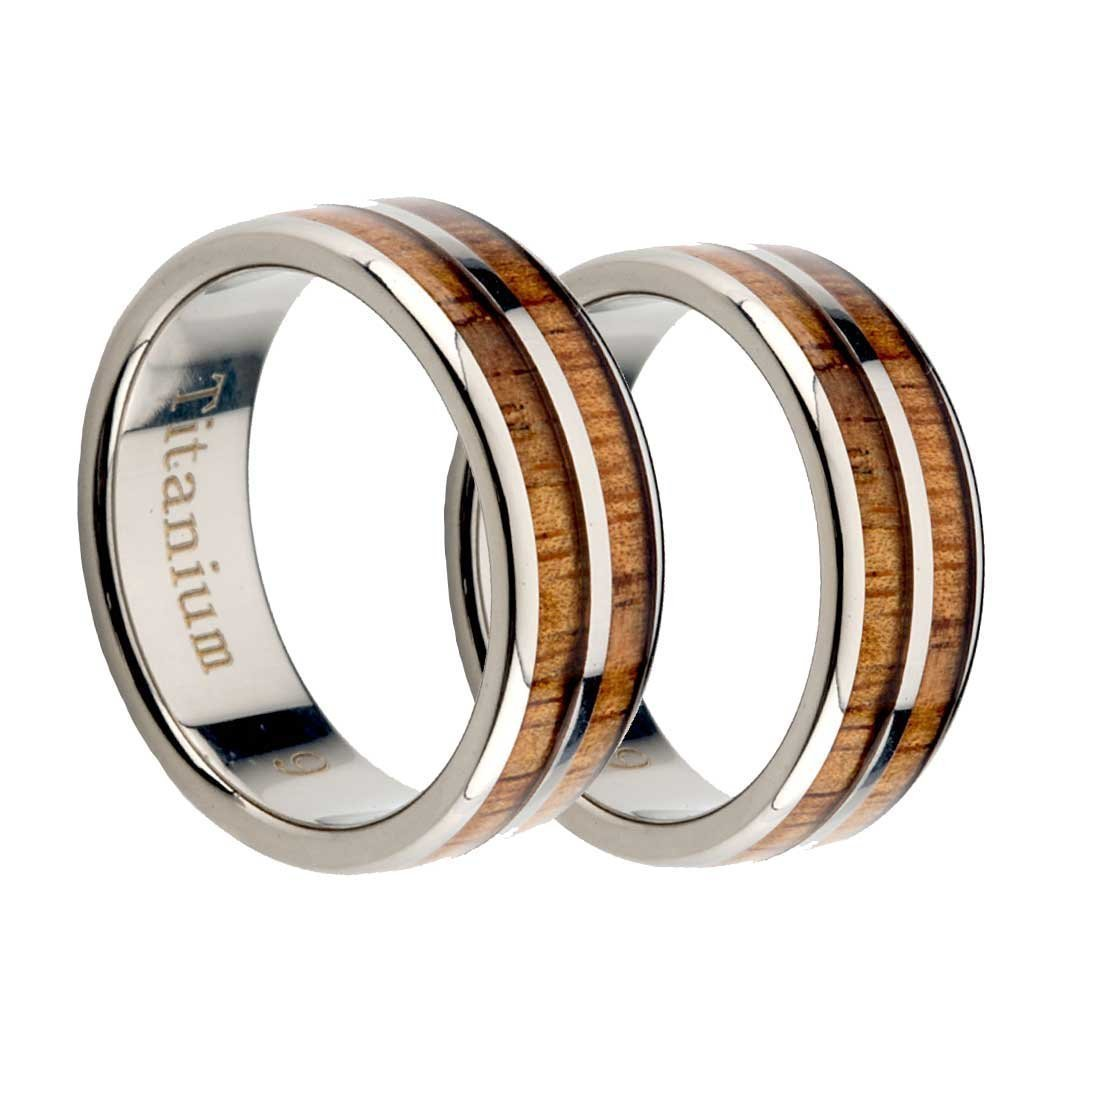 Titanium Wedding Rings set Natural Wood